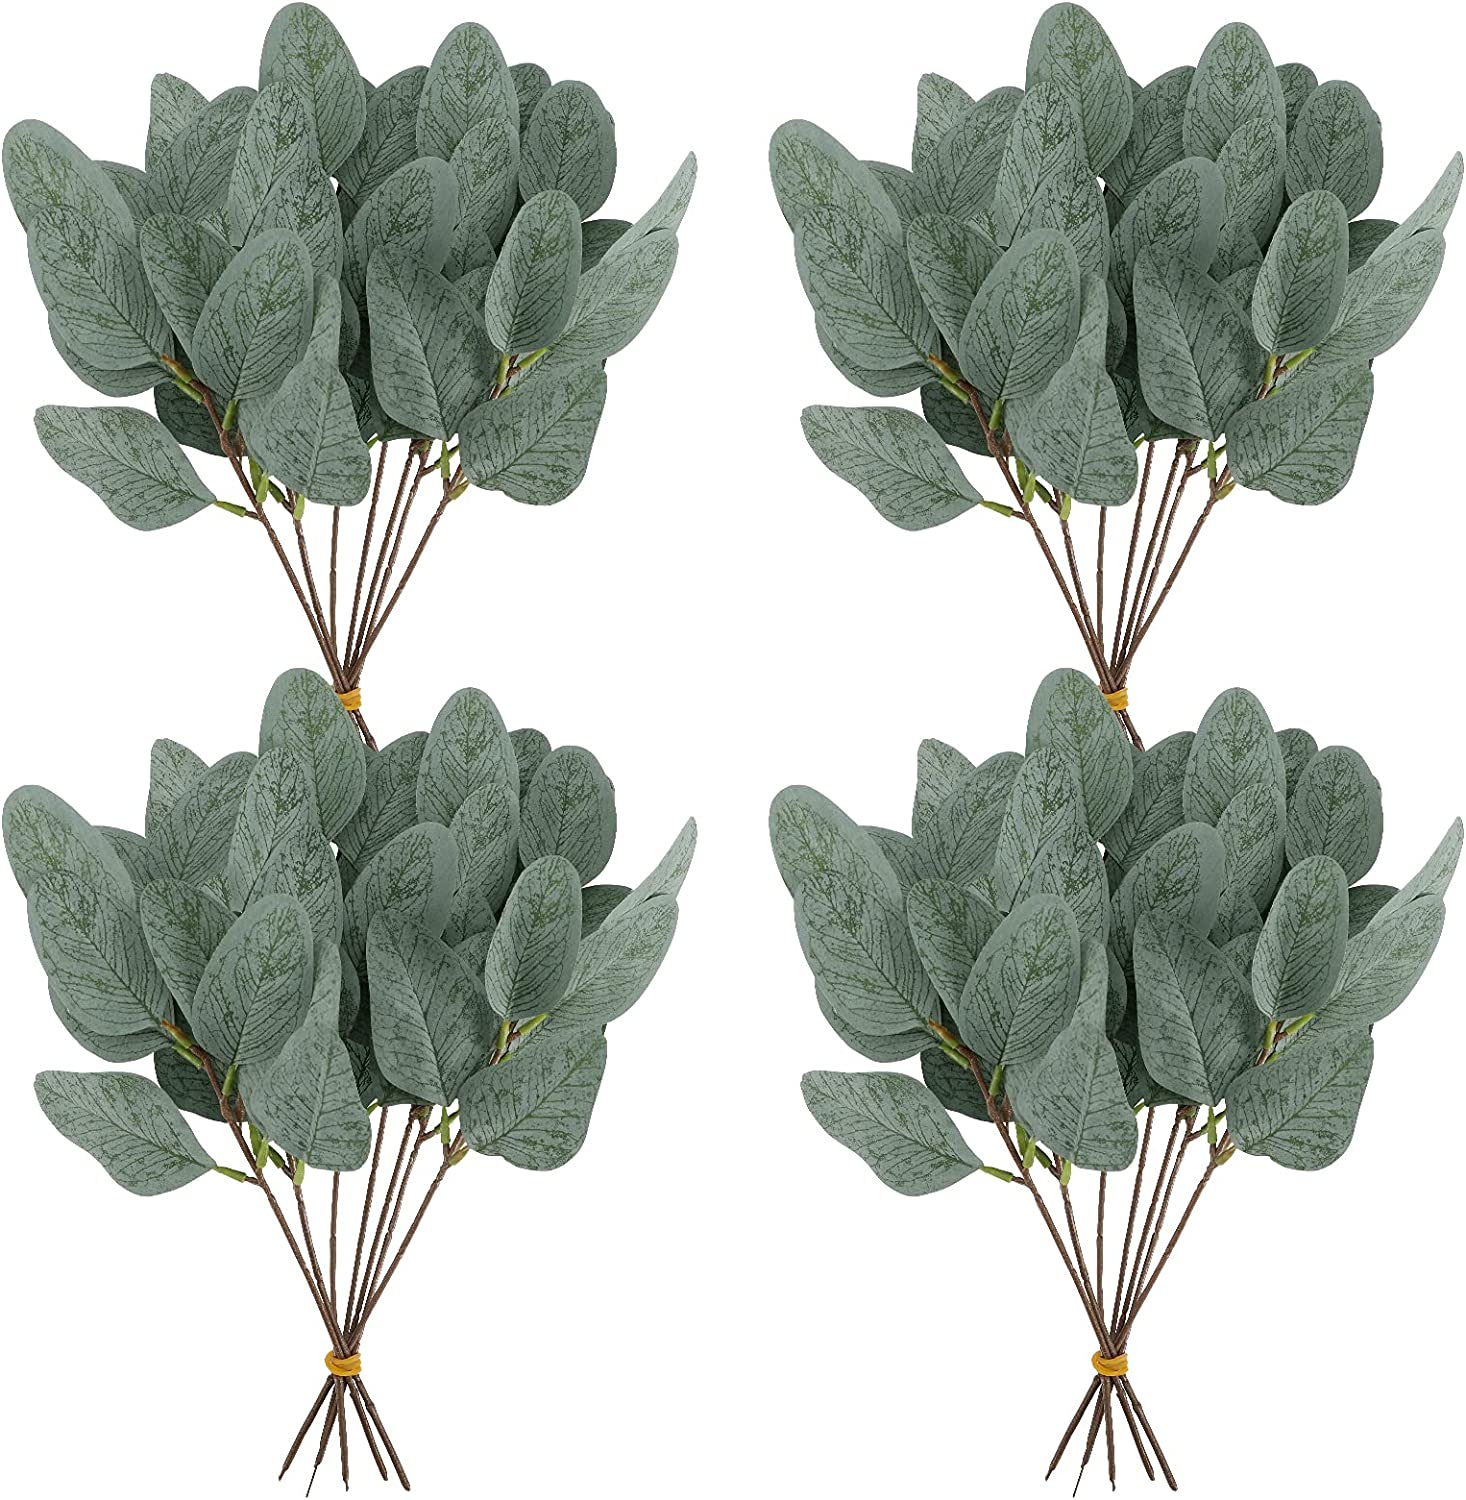 Whonline 20pcs Artificial Eucalyptus Leaves Stems Short Silver Dollar Faux Eucalyptus Branches Greenery Plants for Floral Bouquets Wedding Holiday Decor